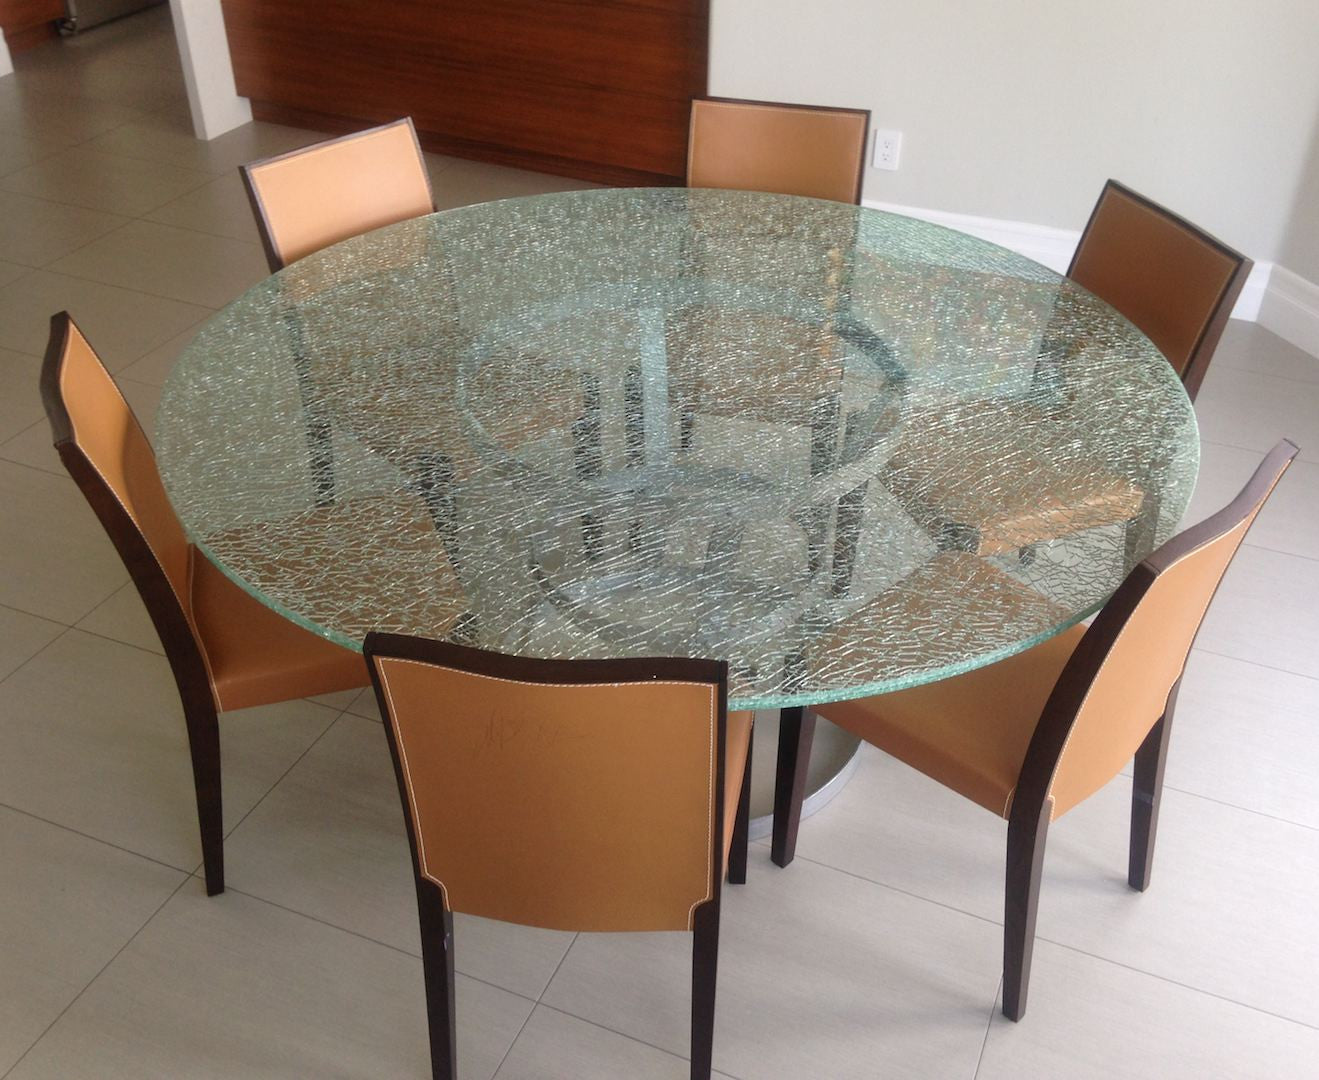 Glass Round Dining Table Black Glass Round Dining Room  : modern crackle glass round dining table2048x2048 from aamps.us size 1319 x 1080 jpeg 207kB